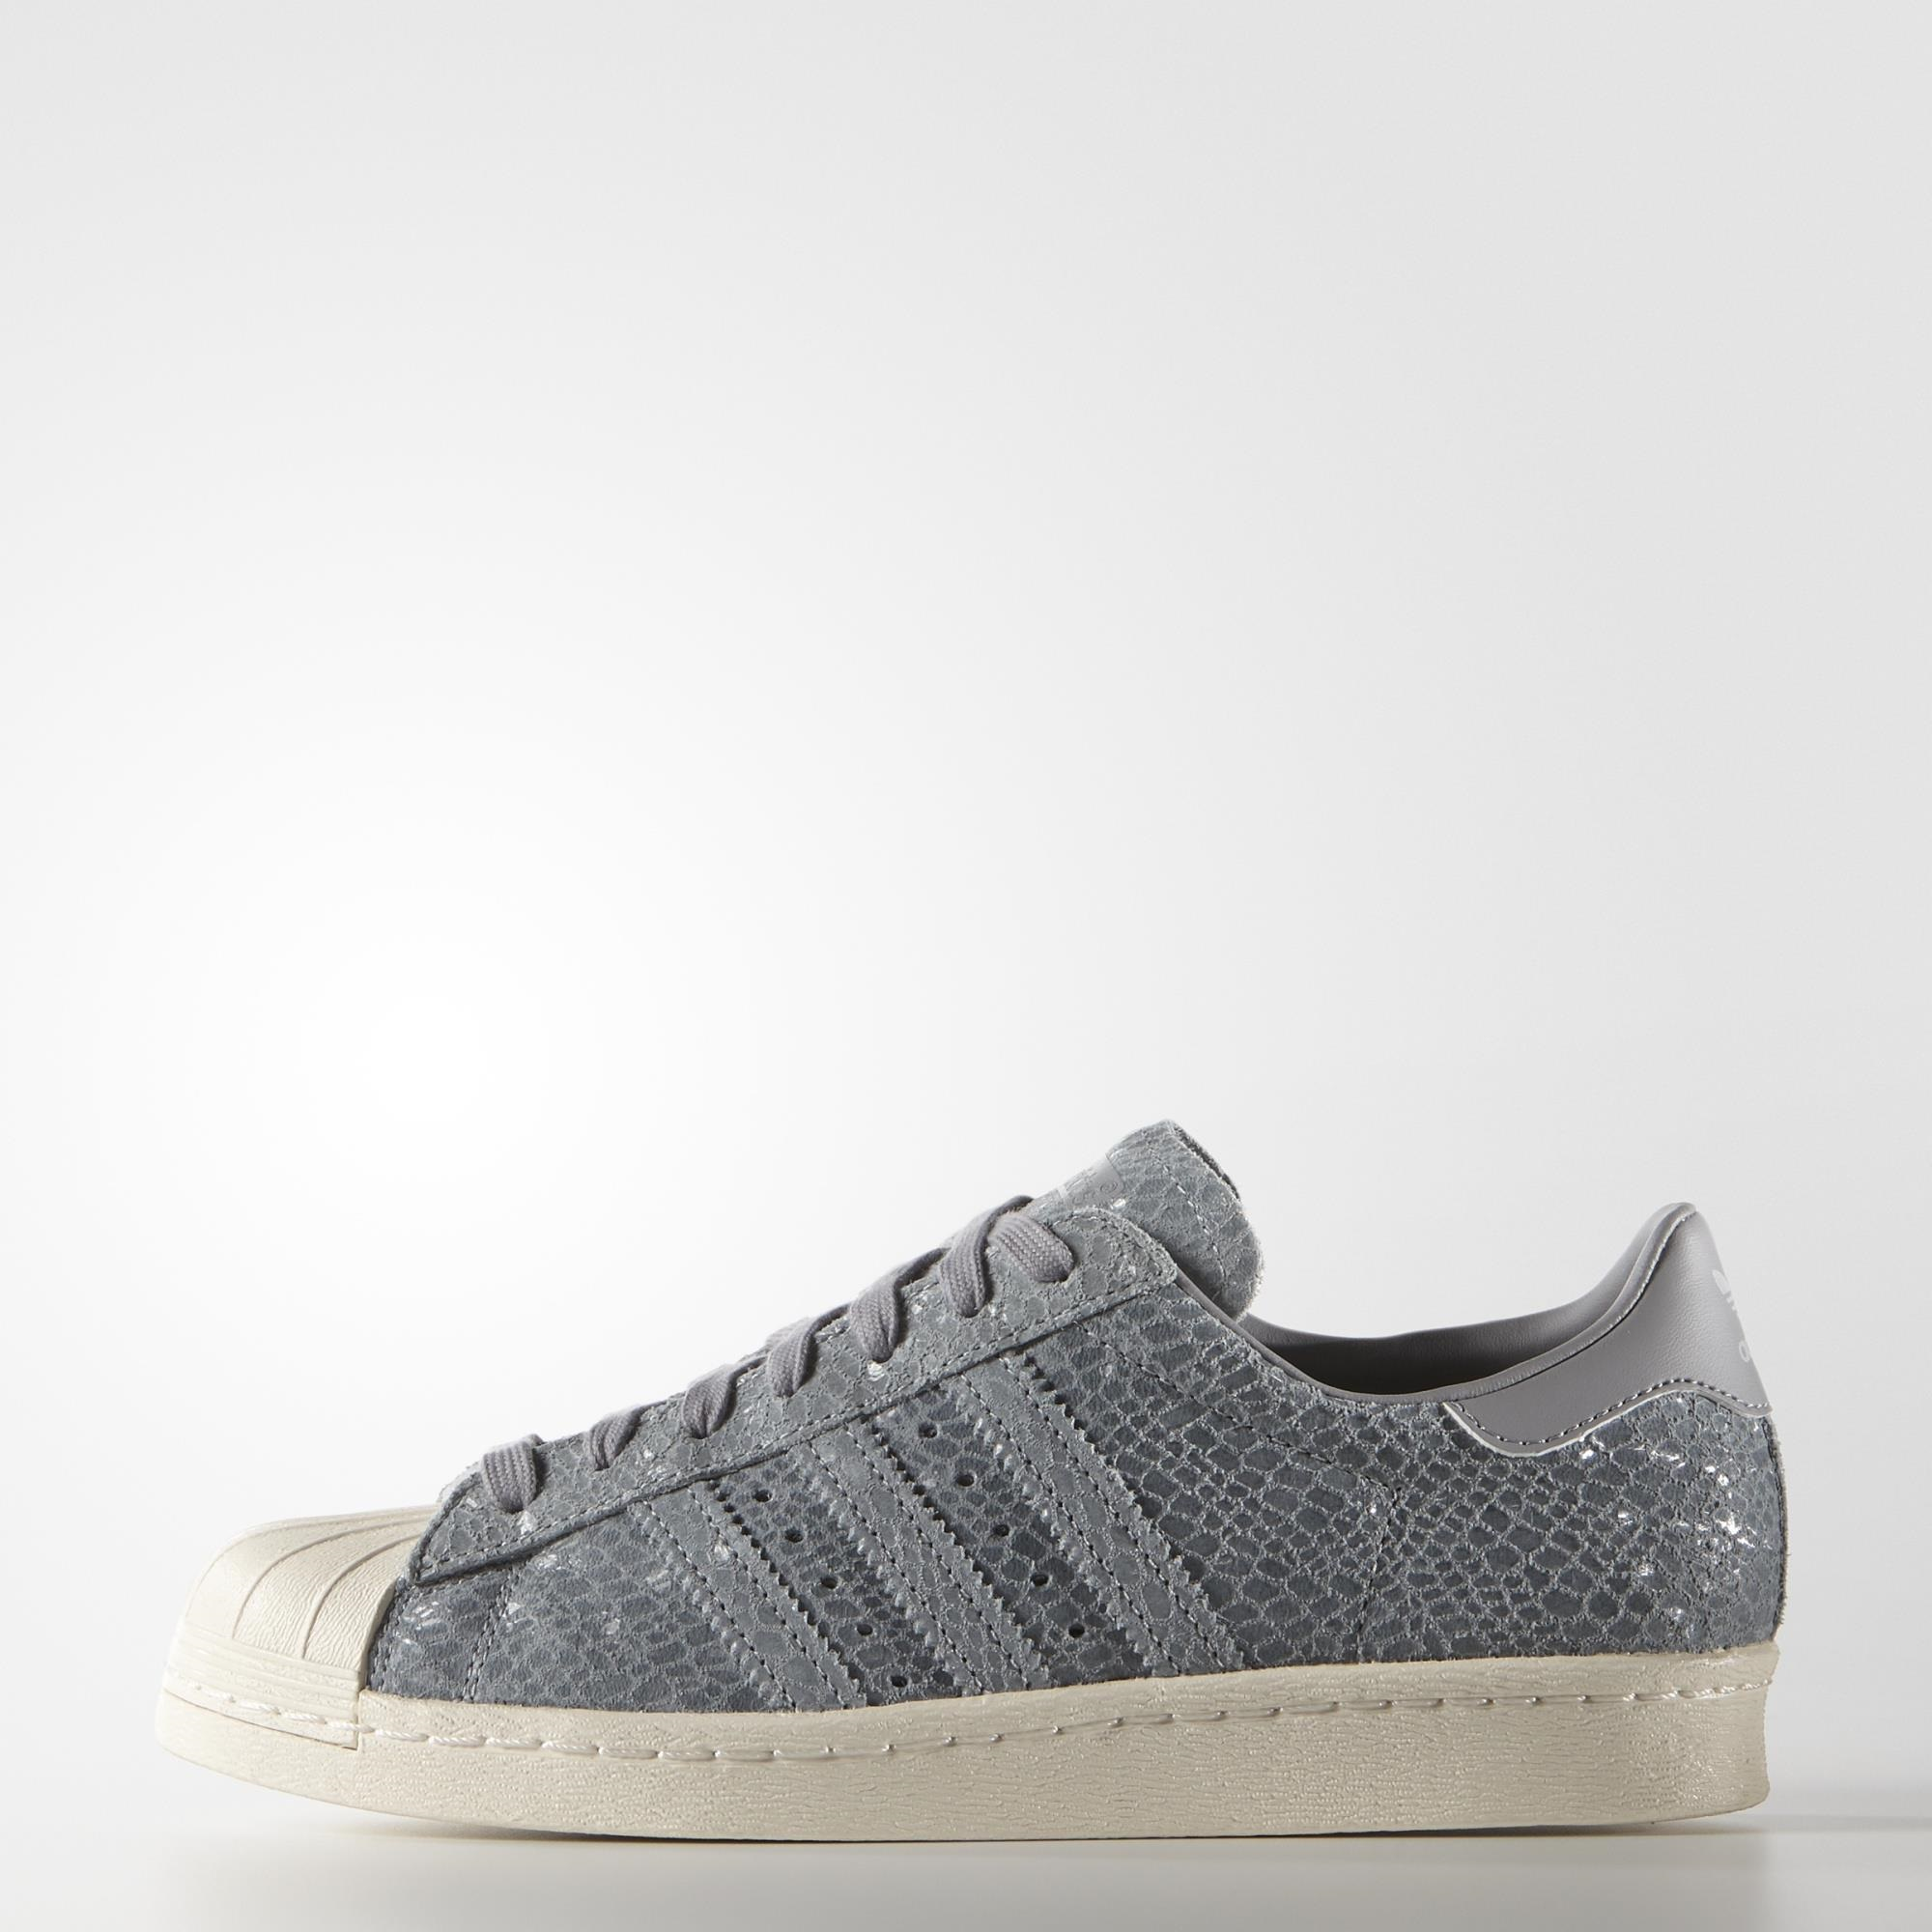 info for 93baf c522c adidas Superstar 80s Shoes - Grey | adidas US